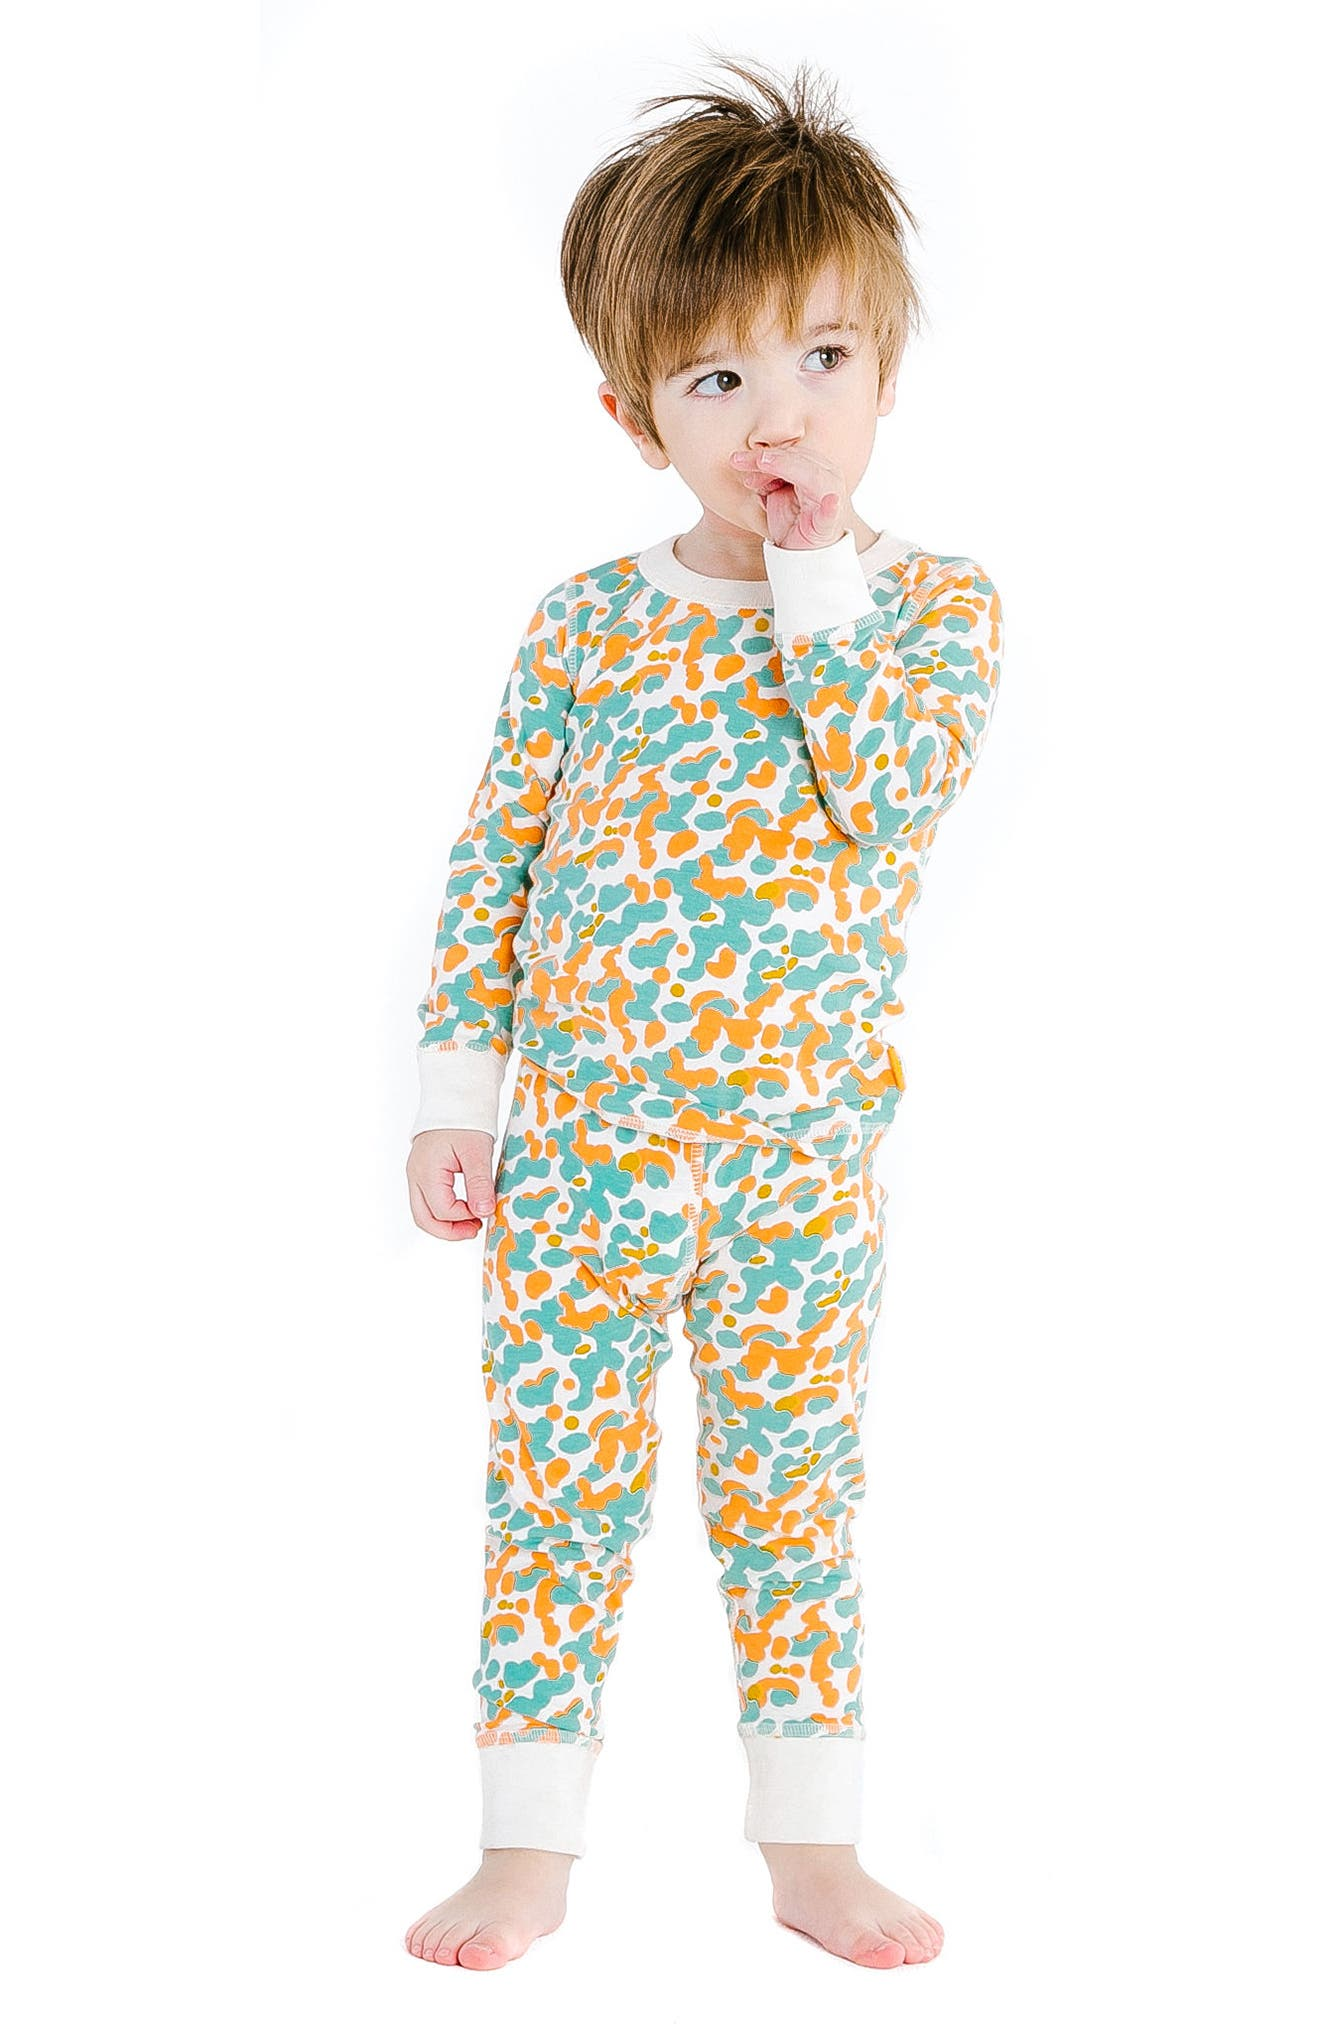 Spotted Organic Cotton Fitted Two-Piece Pajamas,                             Alternate thumbnail 2, color,                             424